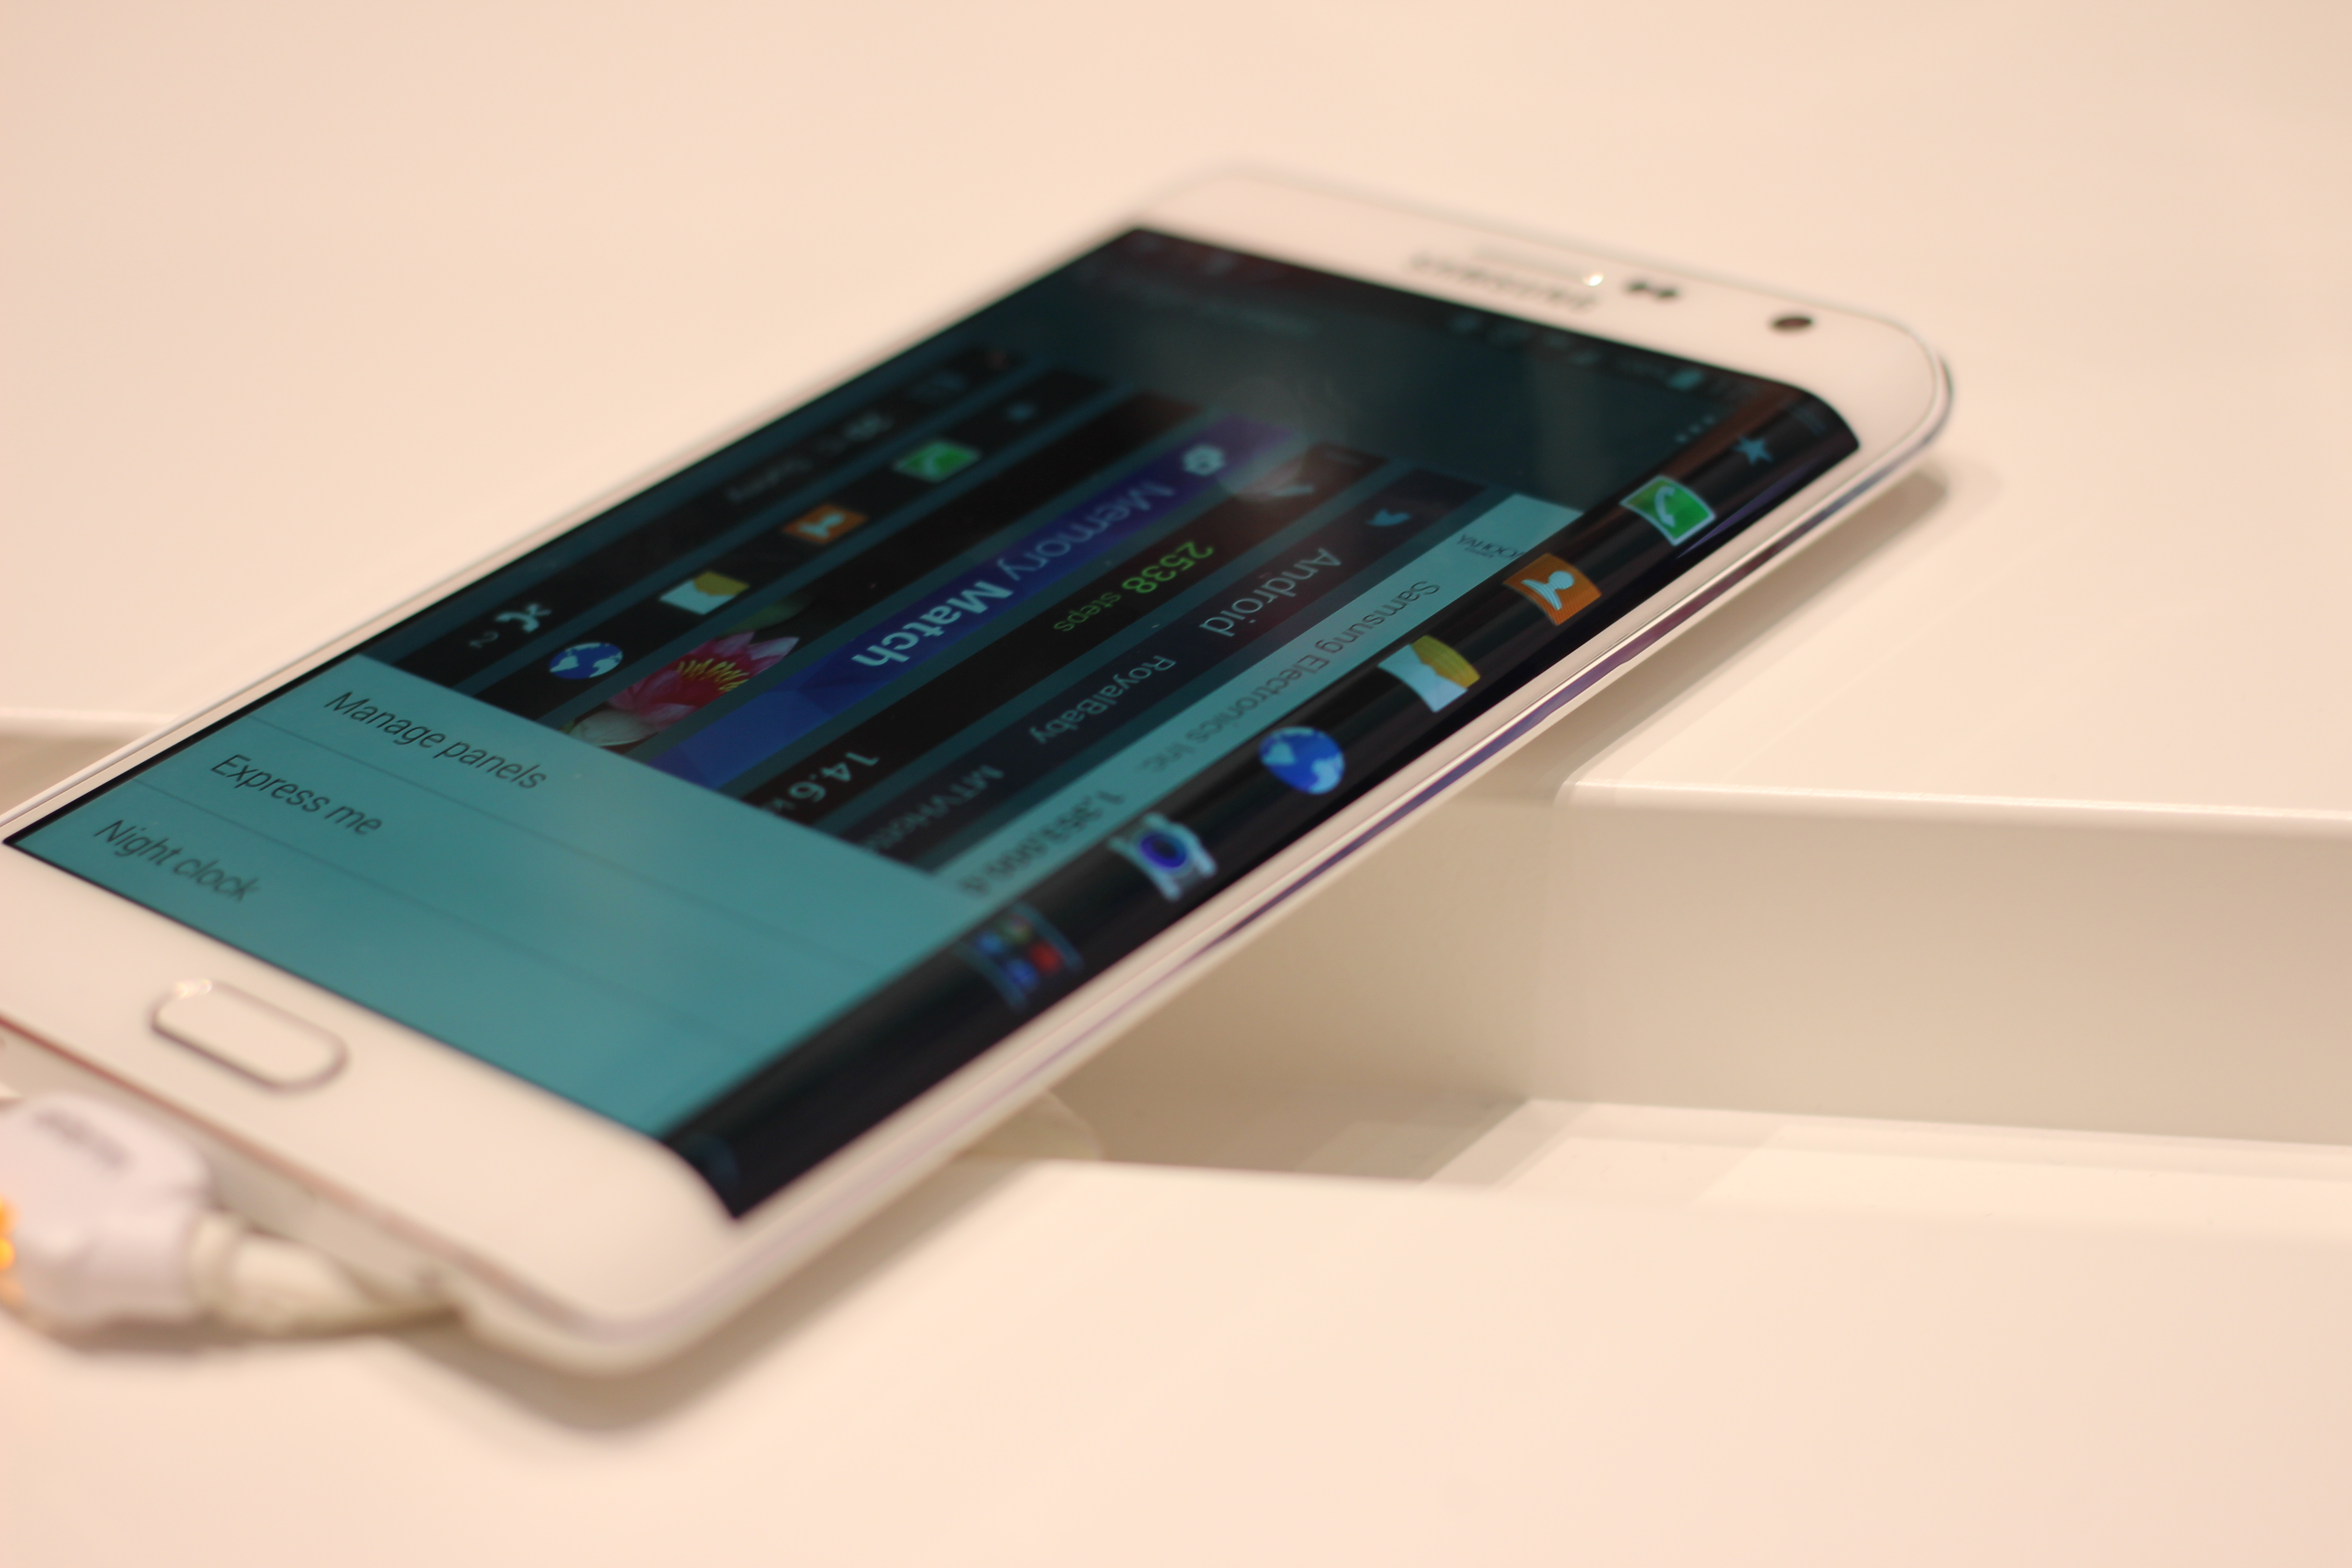 Samsung Galaxy Note Edge - Wikipedia